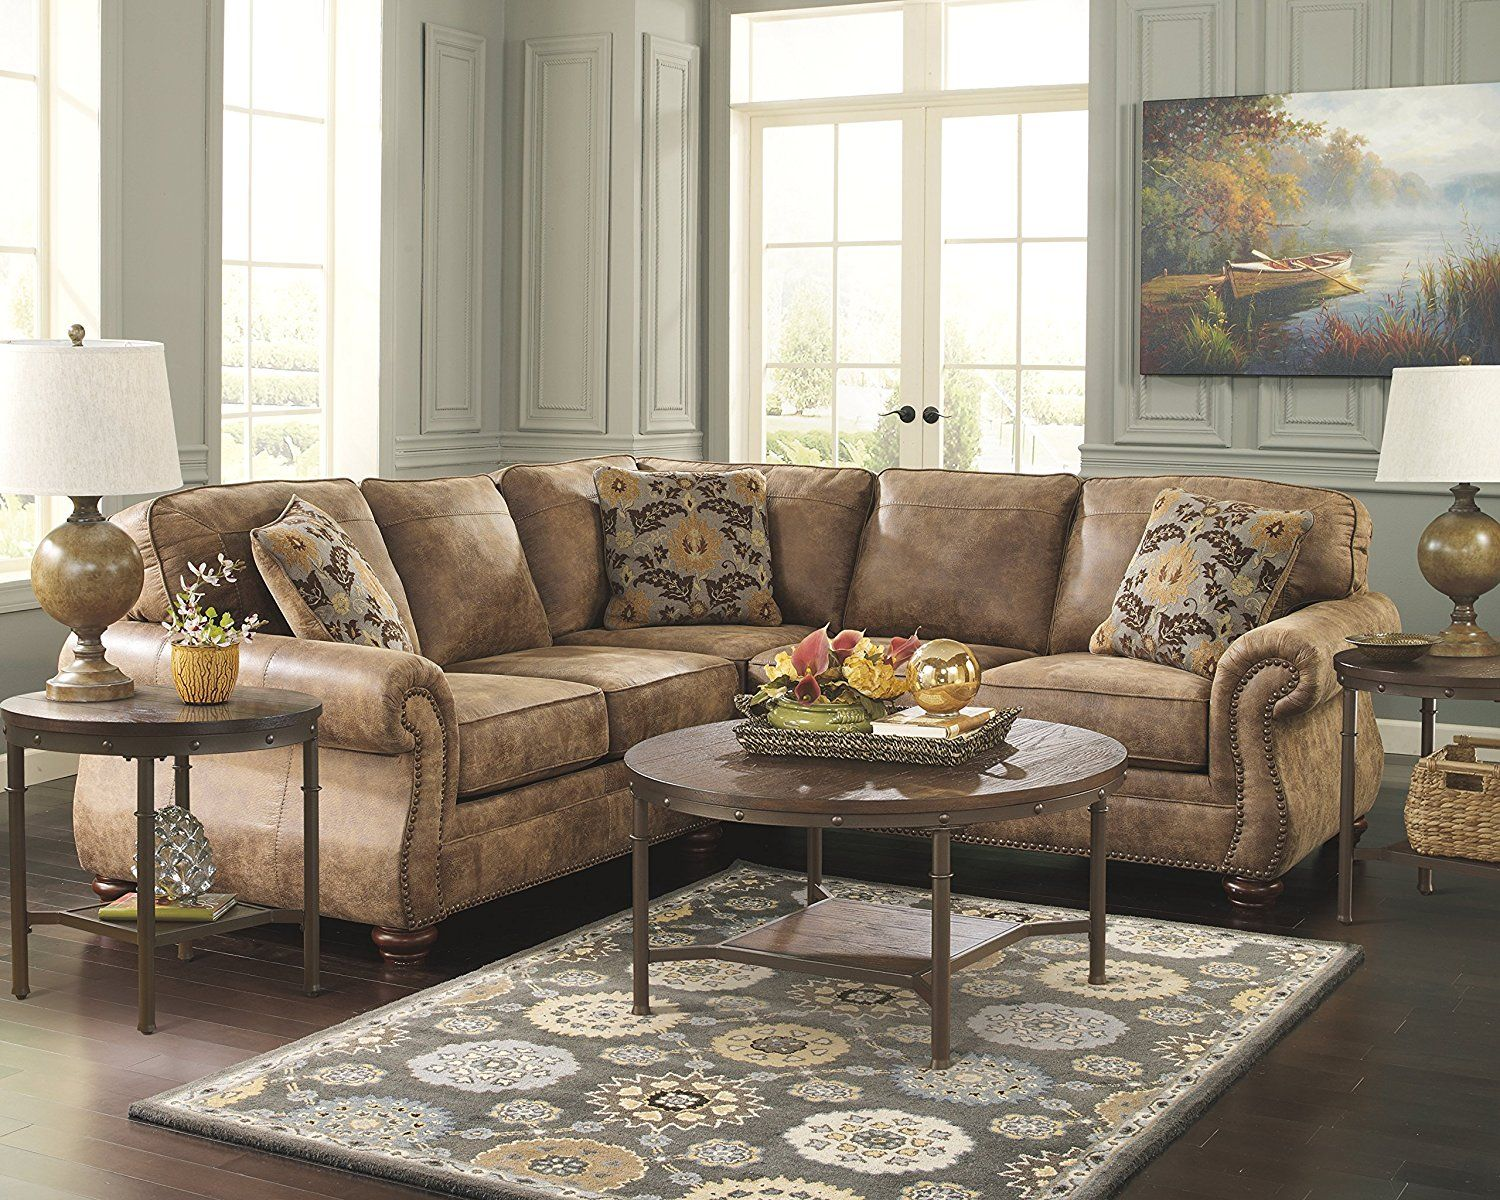 Ashley Furniture Signature Design Sandling Occasional Table Set End Tables And Coffee Table 3 Piece Roun Furniture Living Room Remodel Ashley Furniture